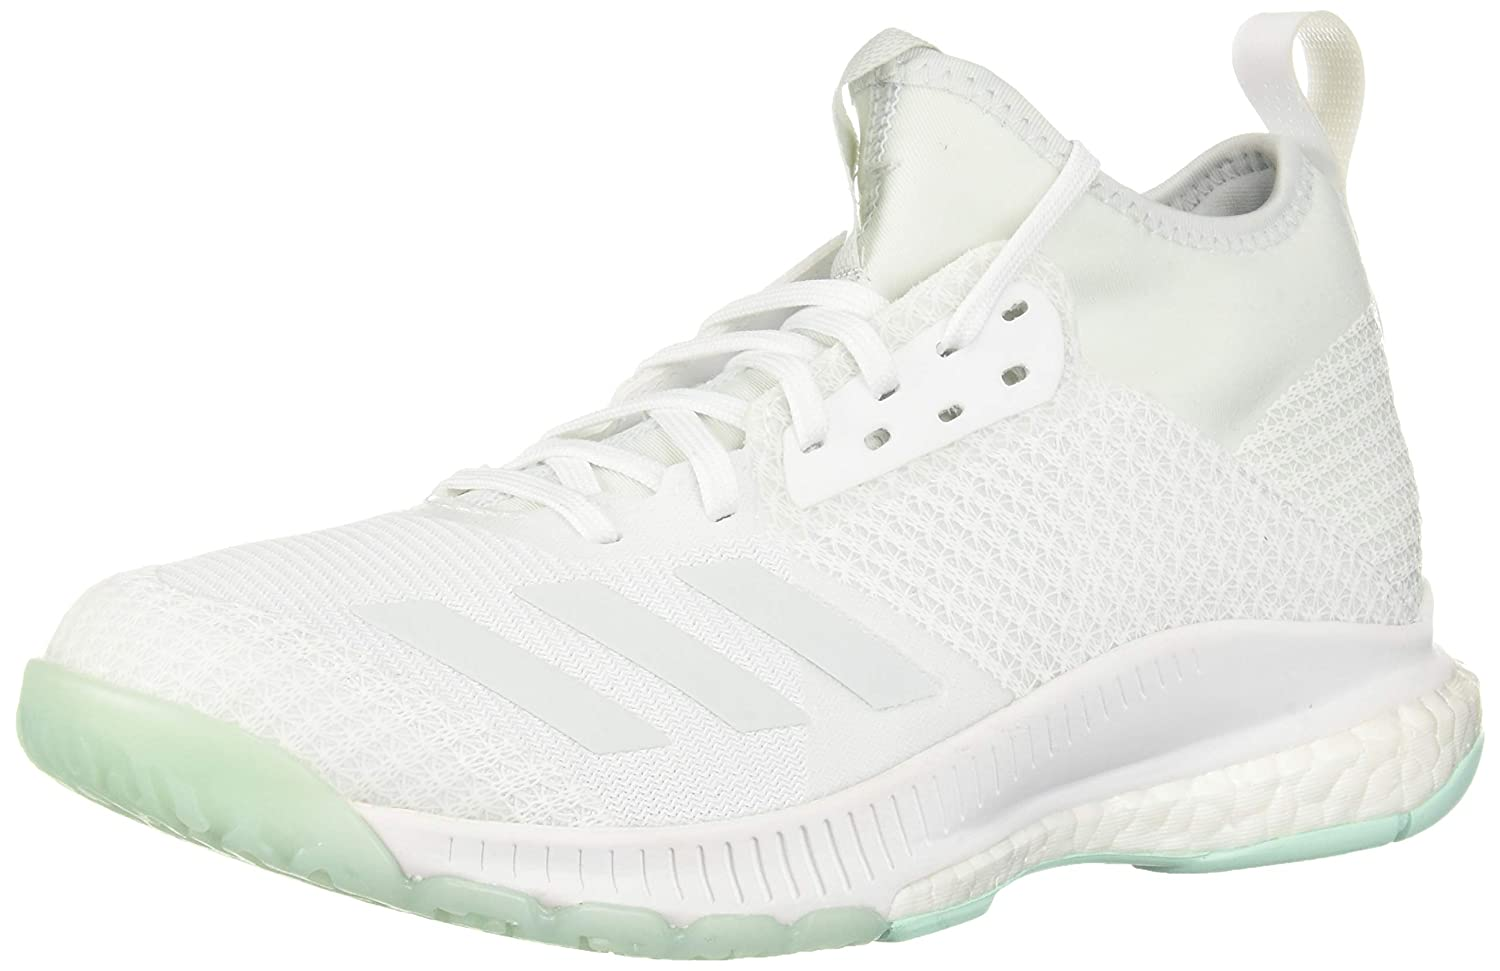 cheap for discount 63f8f b4a11 Adidas Womens Crazyflight X 2 Mid Volleyball Shoe  Amazon.ca  Shoes    Handbags